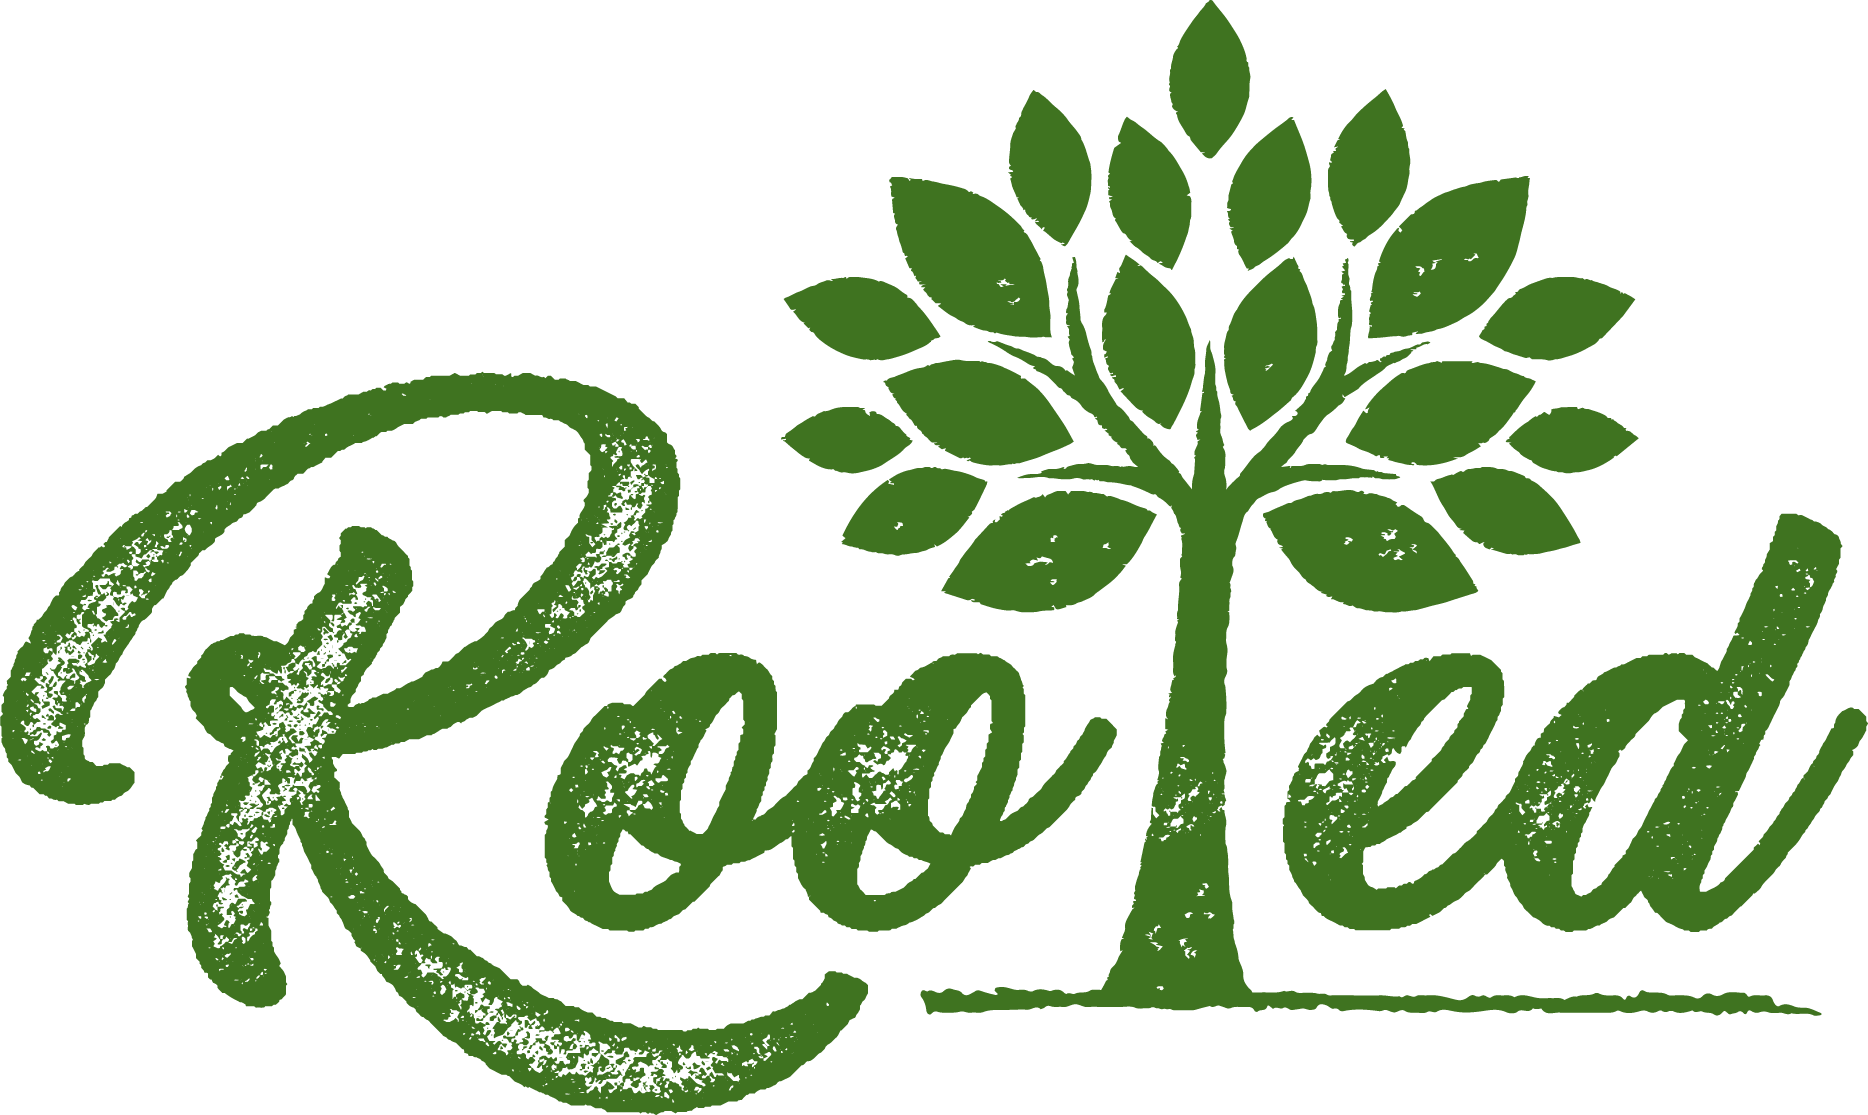 rooted pet composting seattle wa frequently asked questions